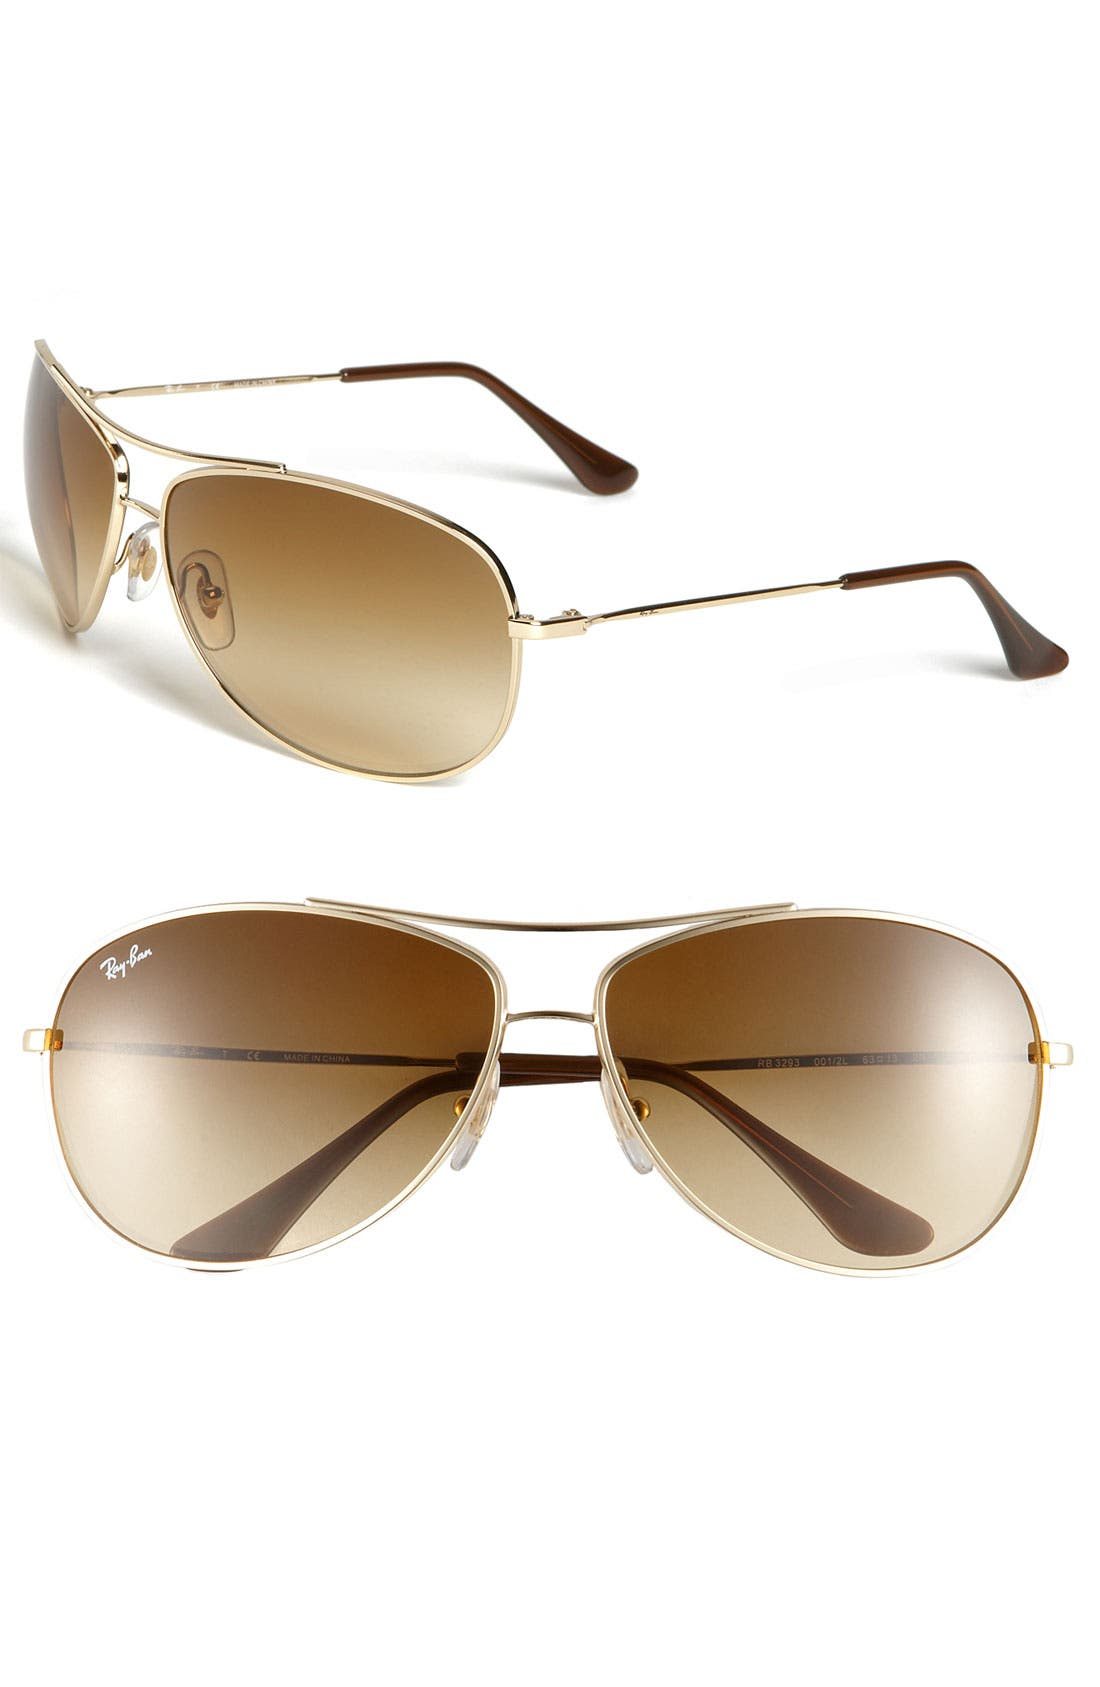 Alternate Image 1 Selected - Ray-Ban 'Bubble Wrap' Metal Aviator Sunglasses